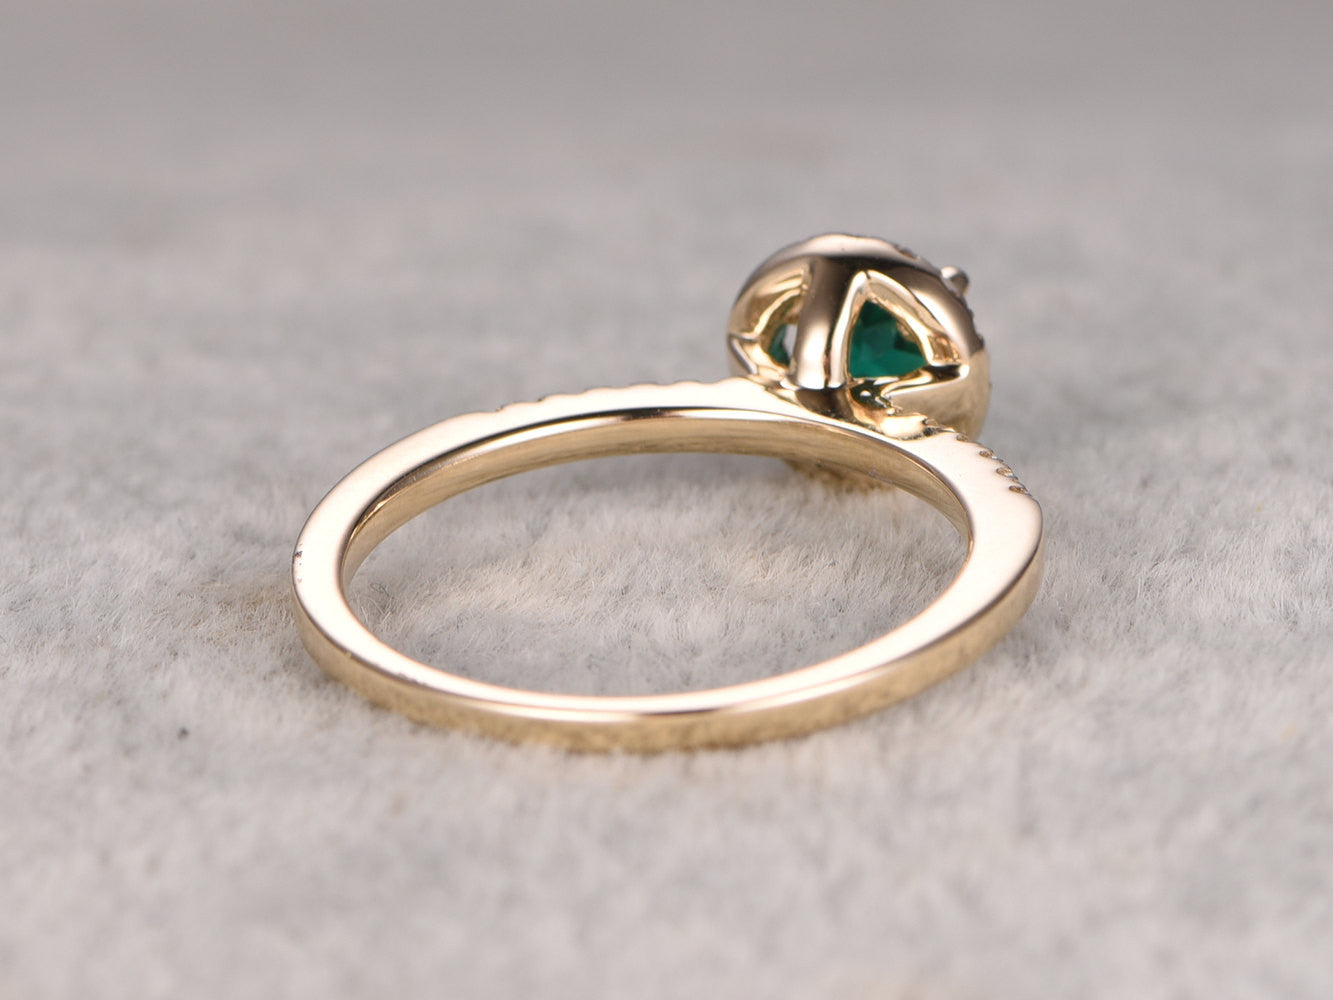 5mm VS green Emerald Engagement ring Yellow gold,Diamond wedding band,14k,Round Cut,Gemstone Promise Bridal Ring,Halo,Lab-treated